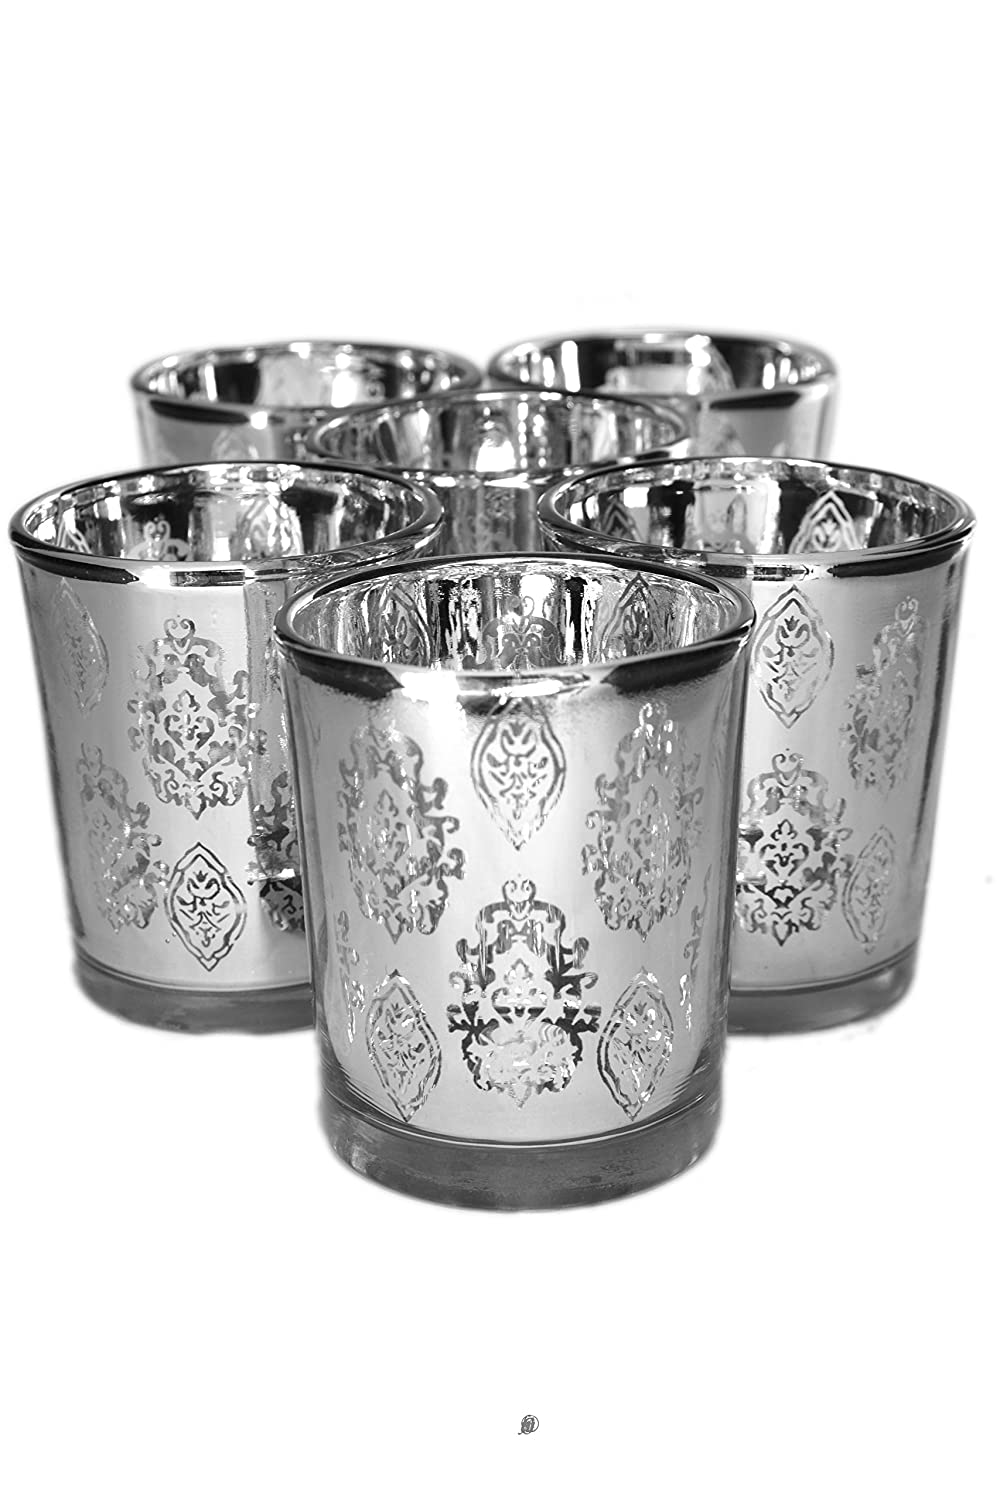 Set of 6 Moroccan Motif Silver Mercury Glass Votive / Tealight Candle Holders American Chateau